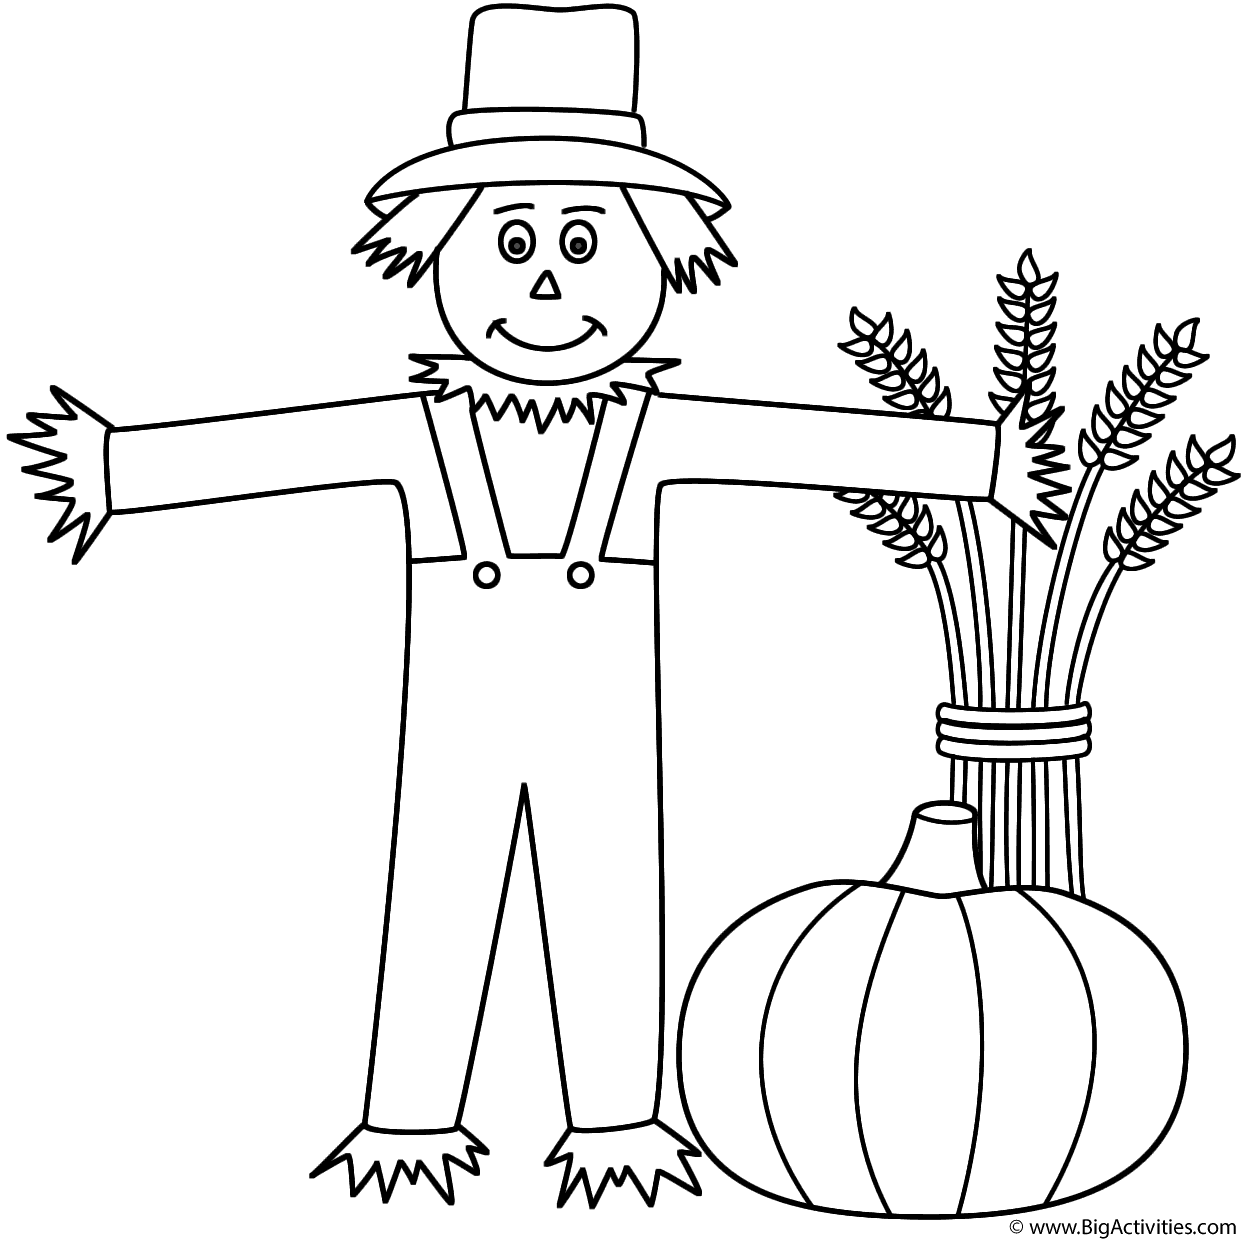 Scarecrow With Wheat Sheaf And Pumpkin